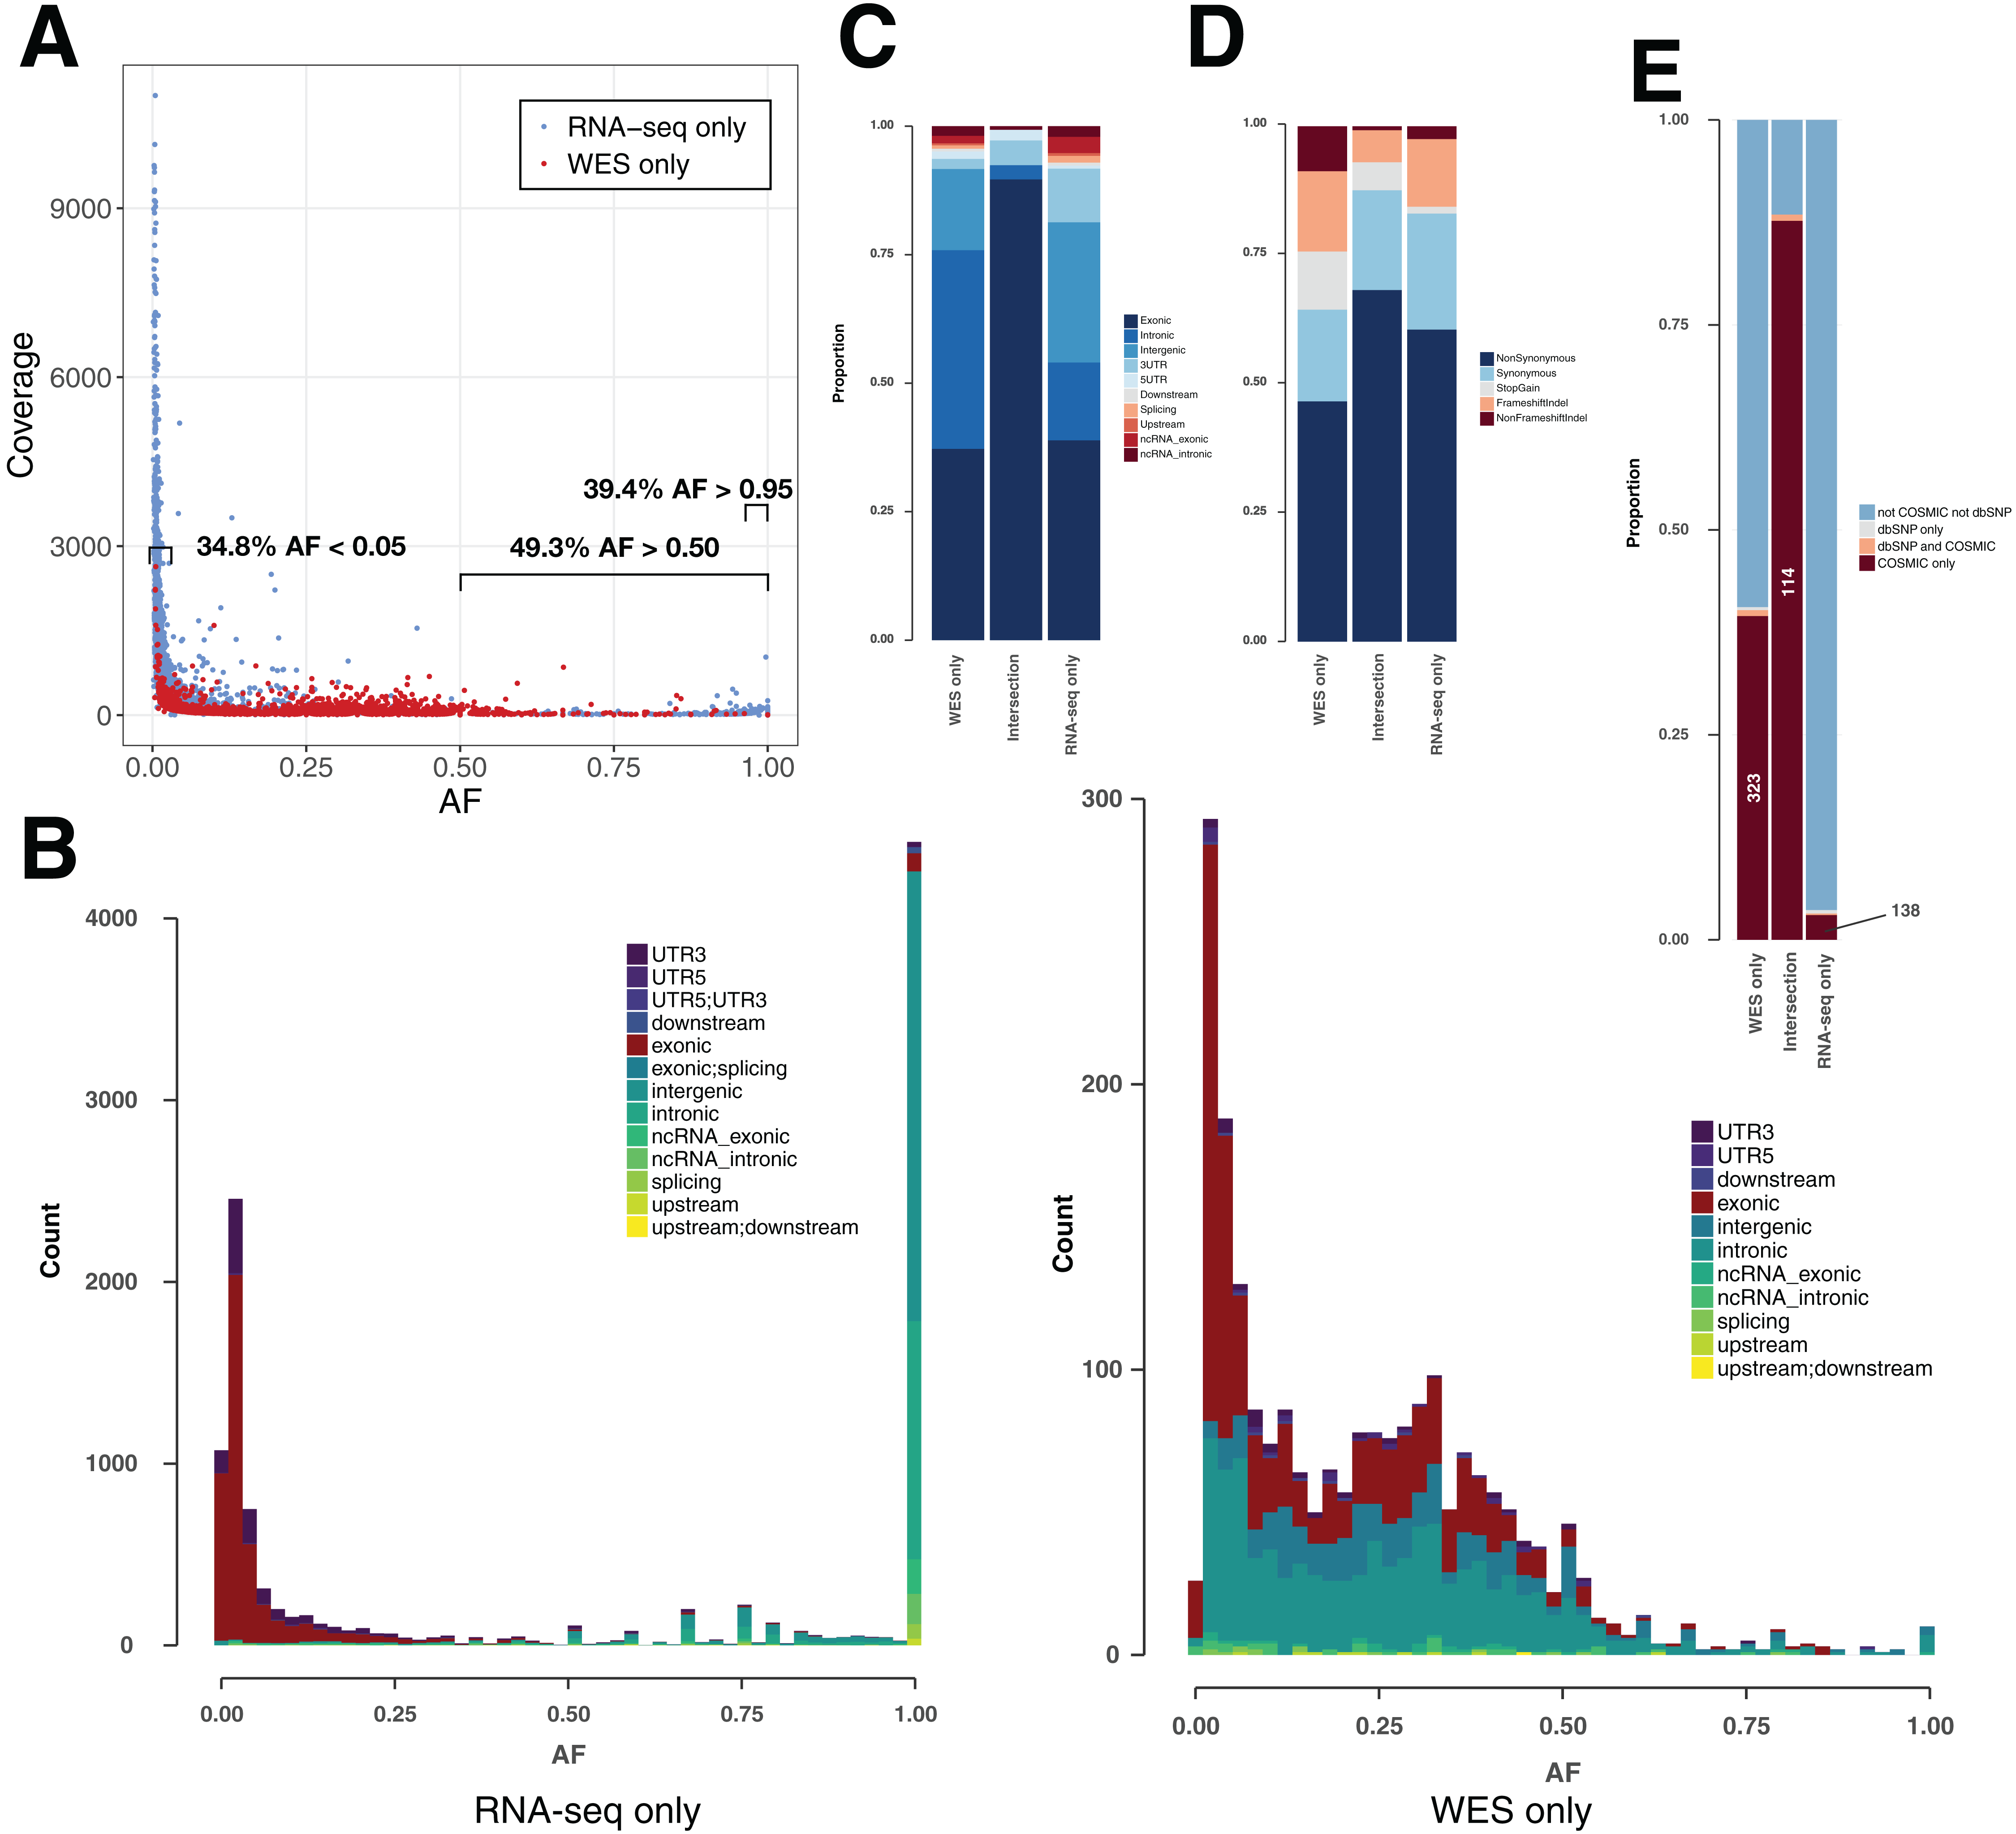 Detection and benchmarking of somatic mutations in cancer genomes